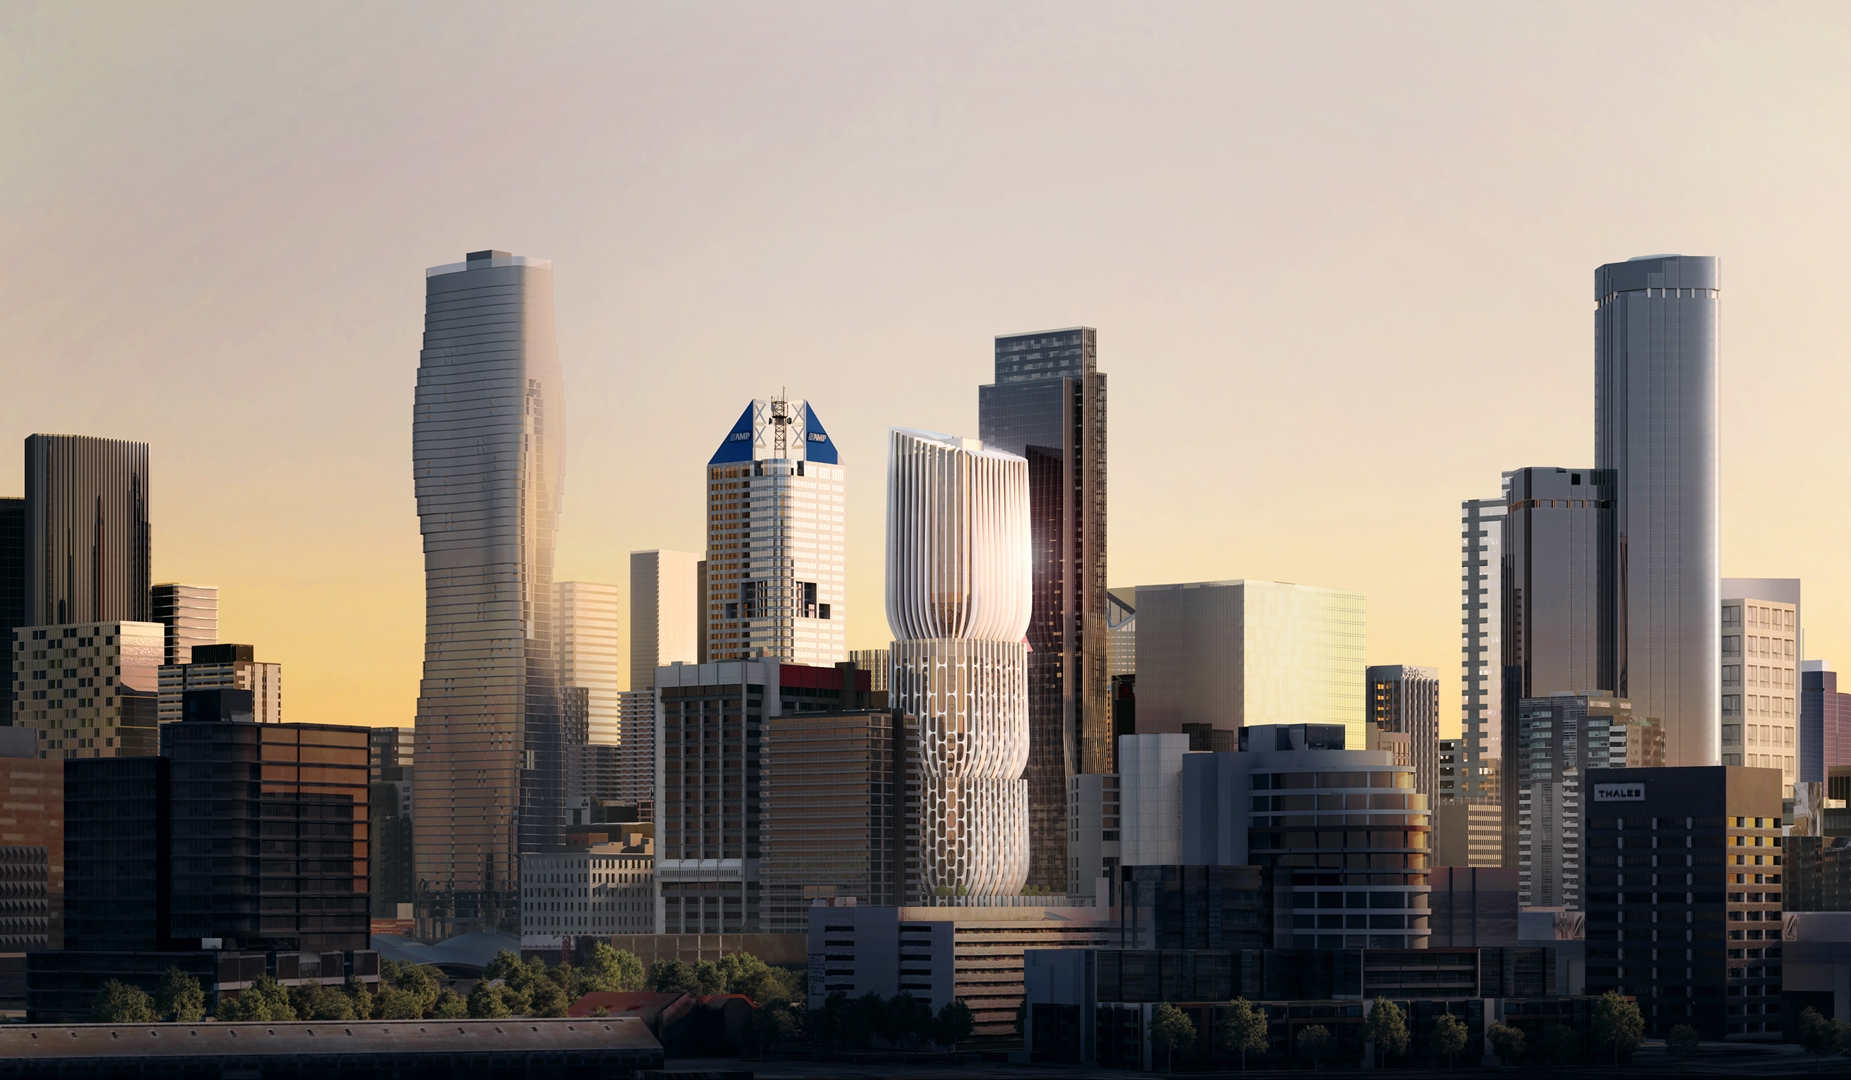 04_ZHA_MandarinOriental_Melbourne_Skyline©Visualarch (Copy)